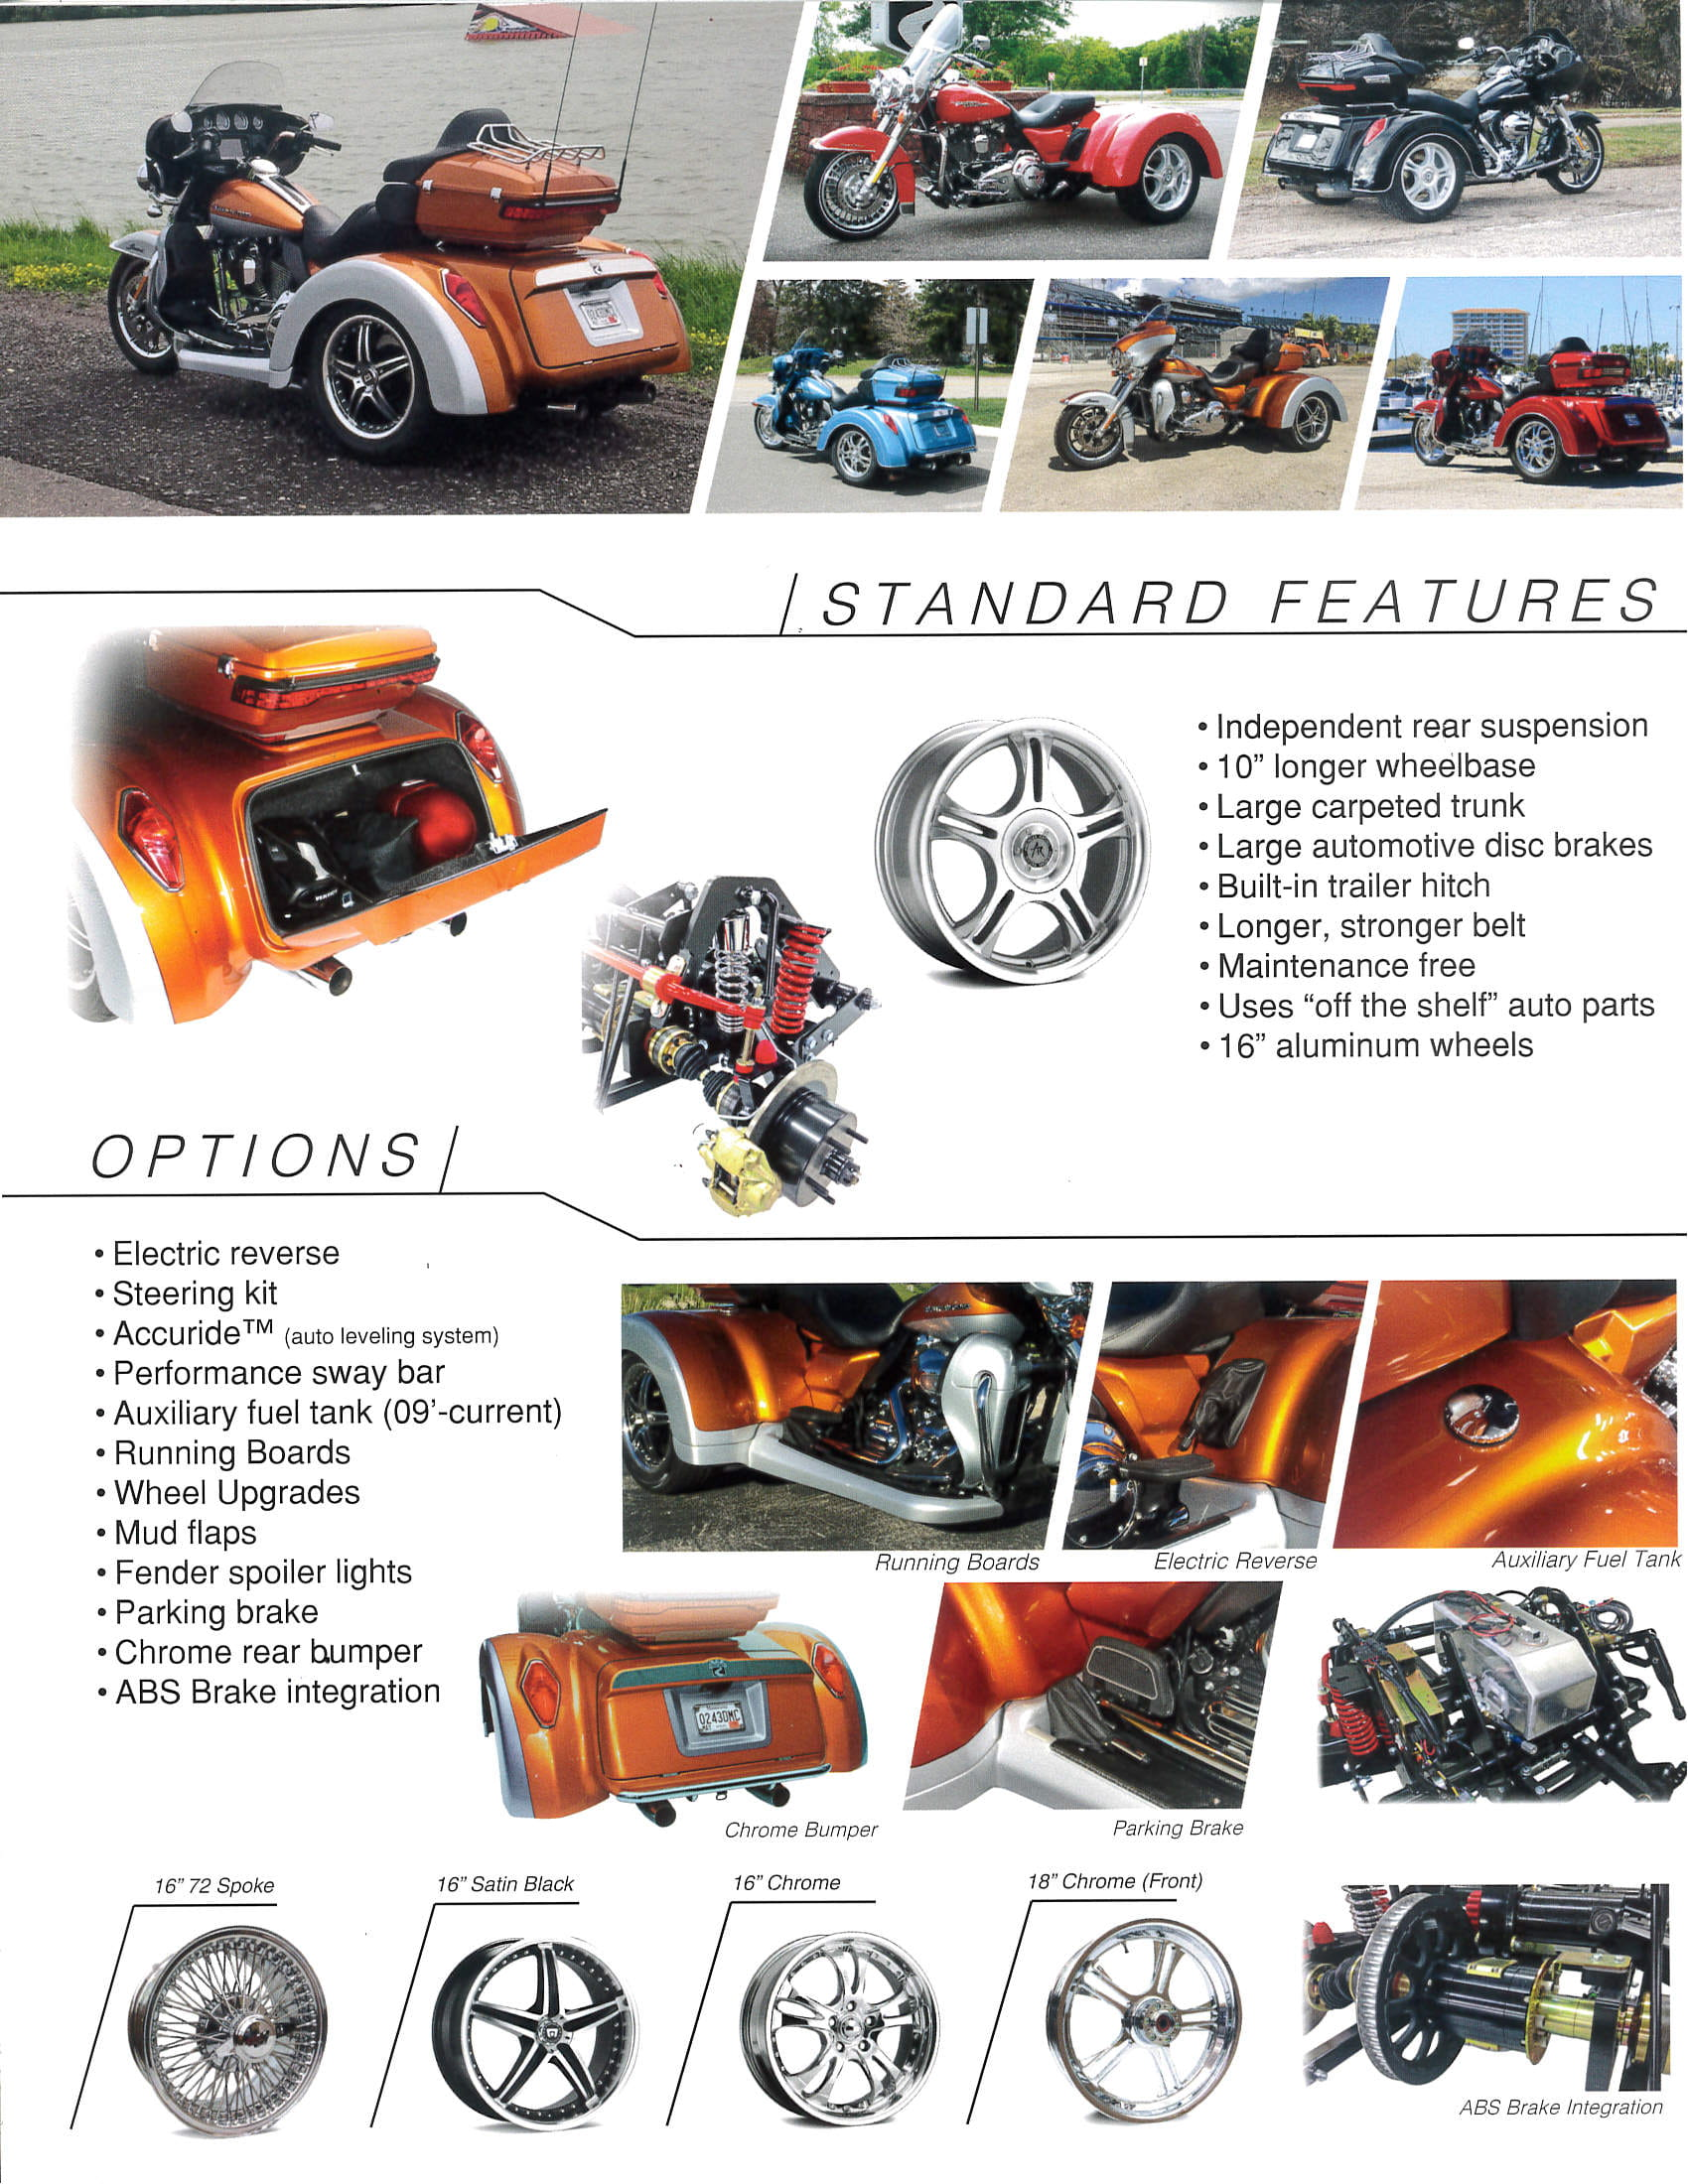 best features Roadsmith independent suspension trike kit for Harley Davidson.jpg